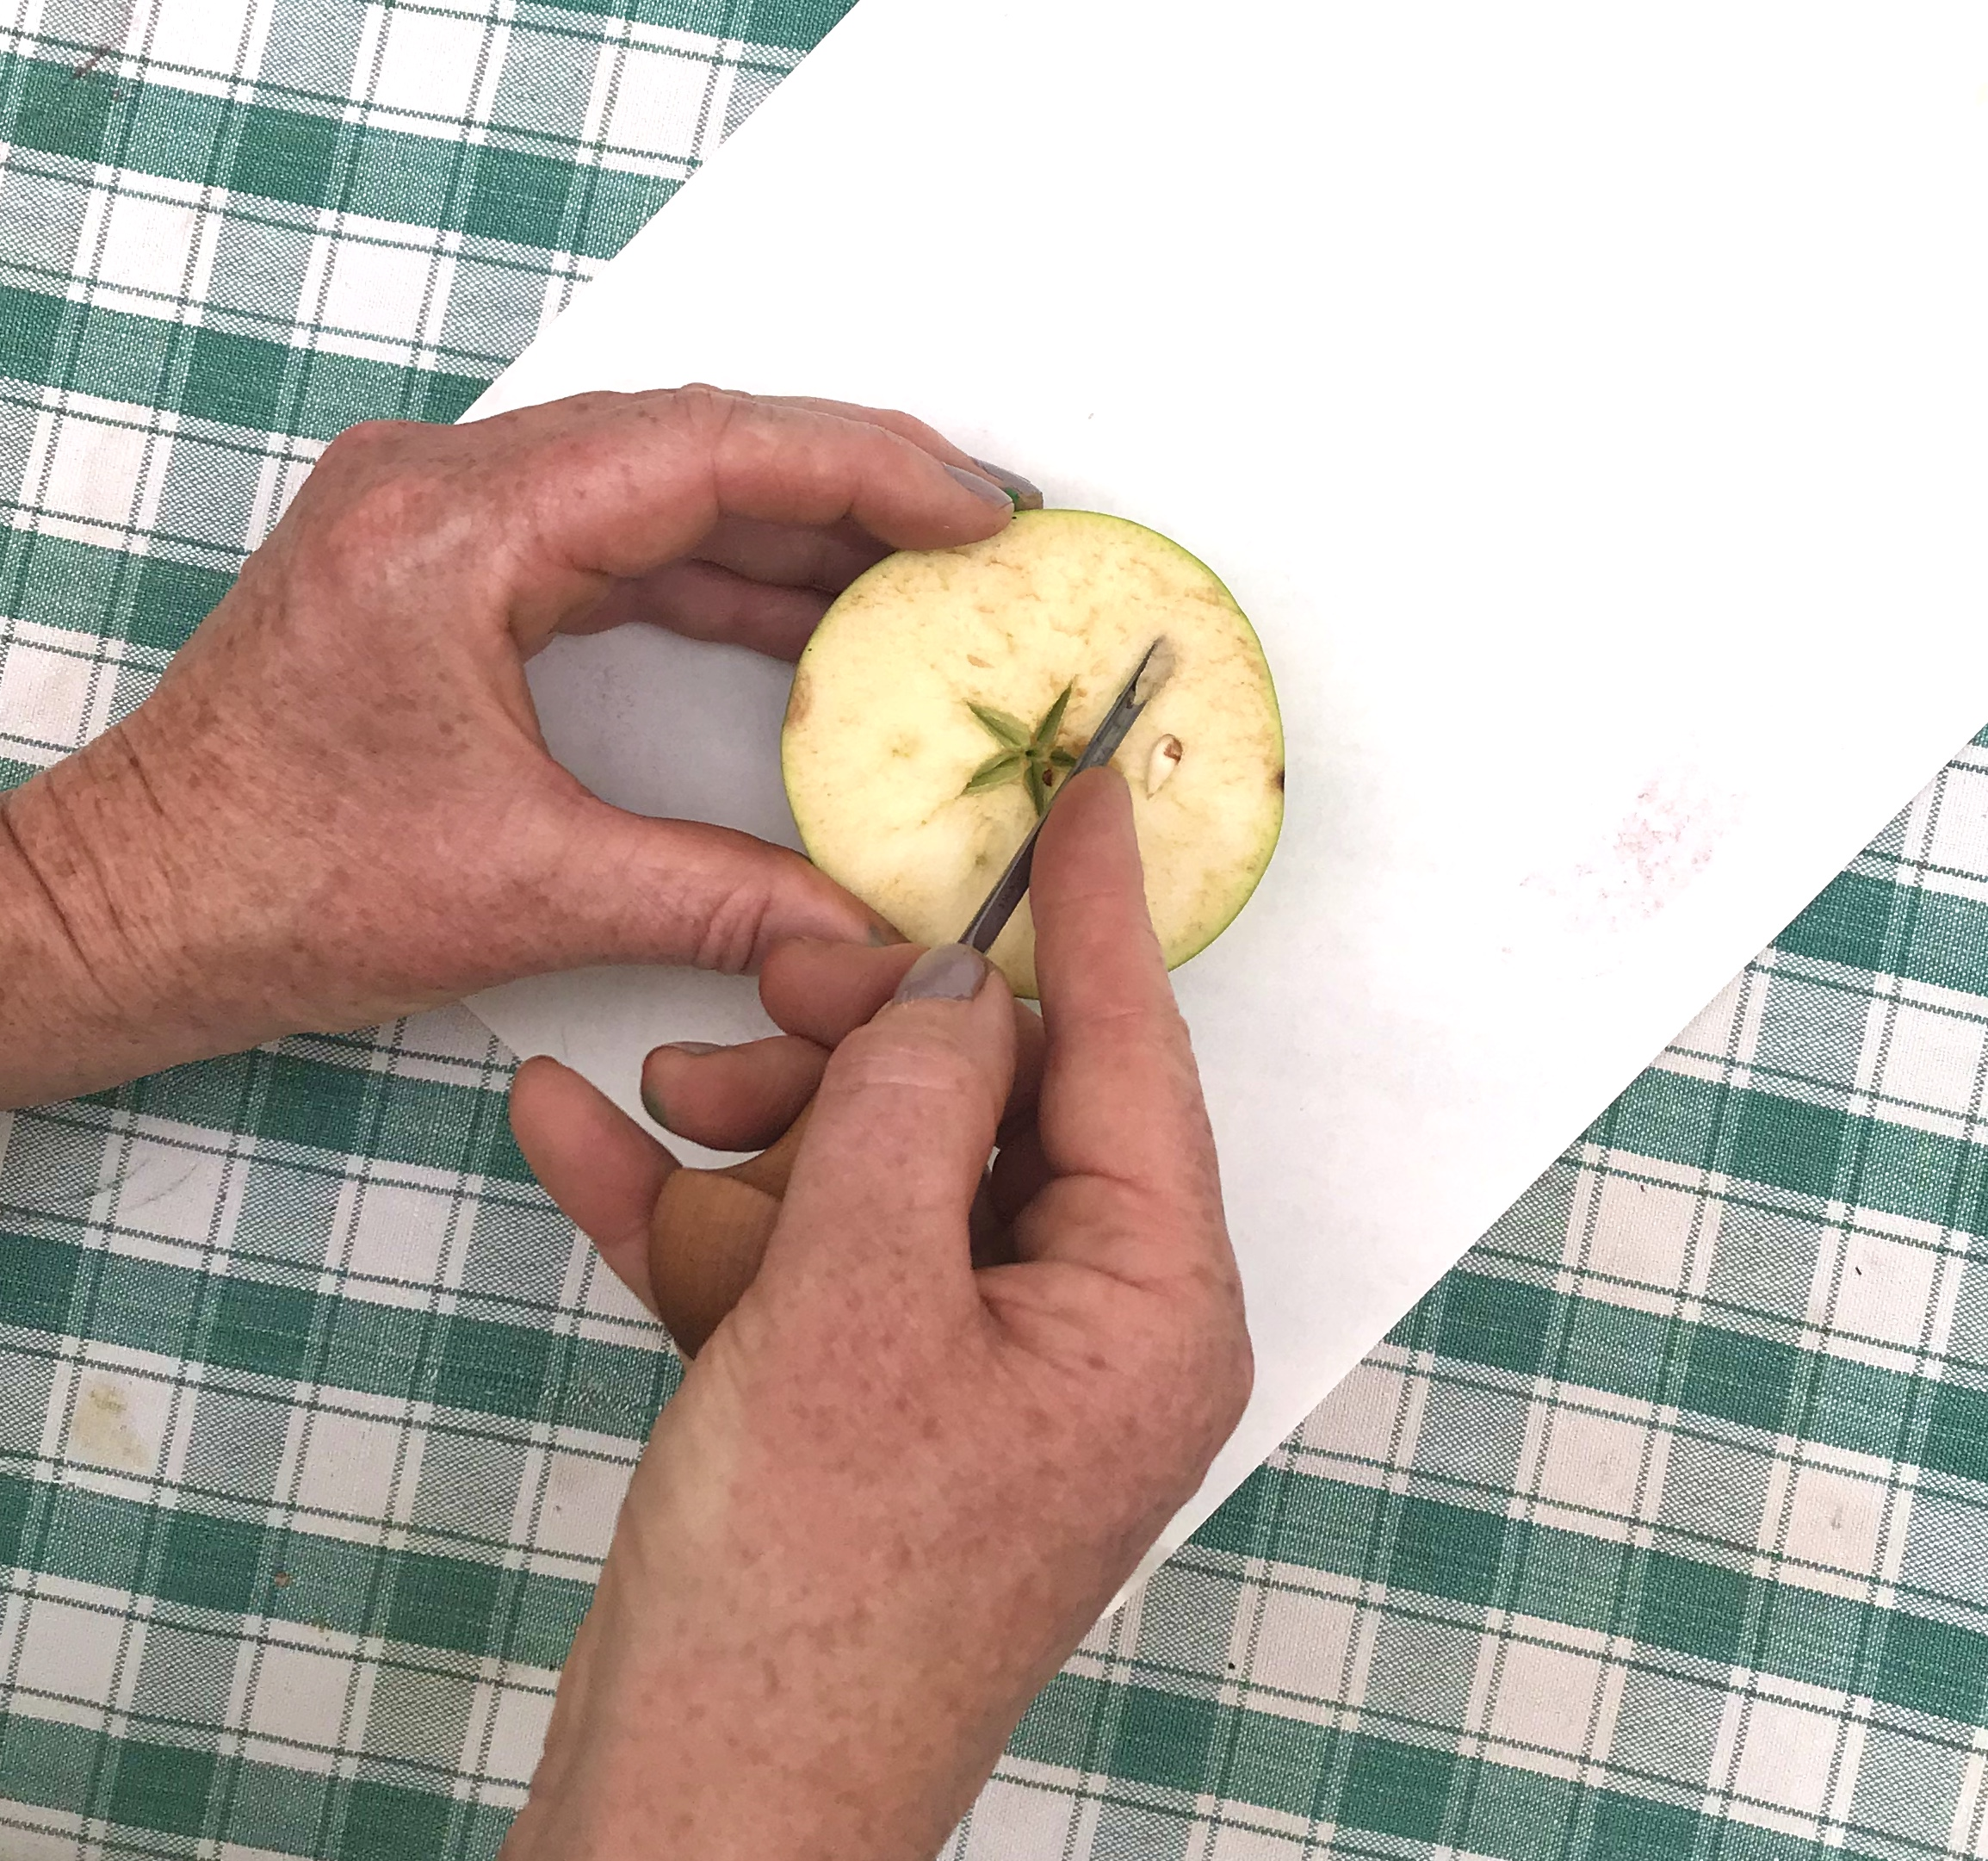 A pair of hands, holding half an apple and using a metal tool to cut a pattern in the surface of the apple